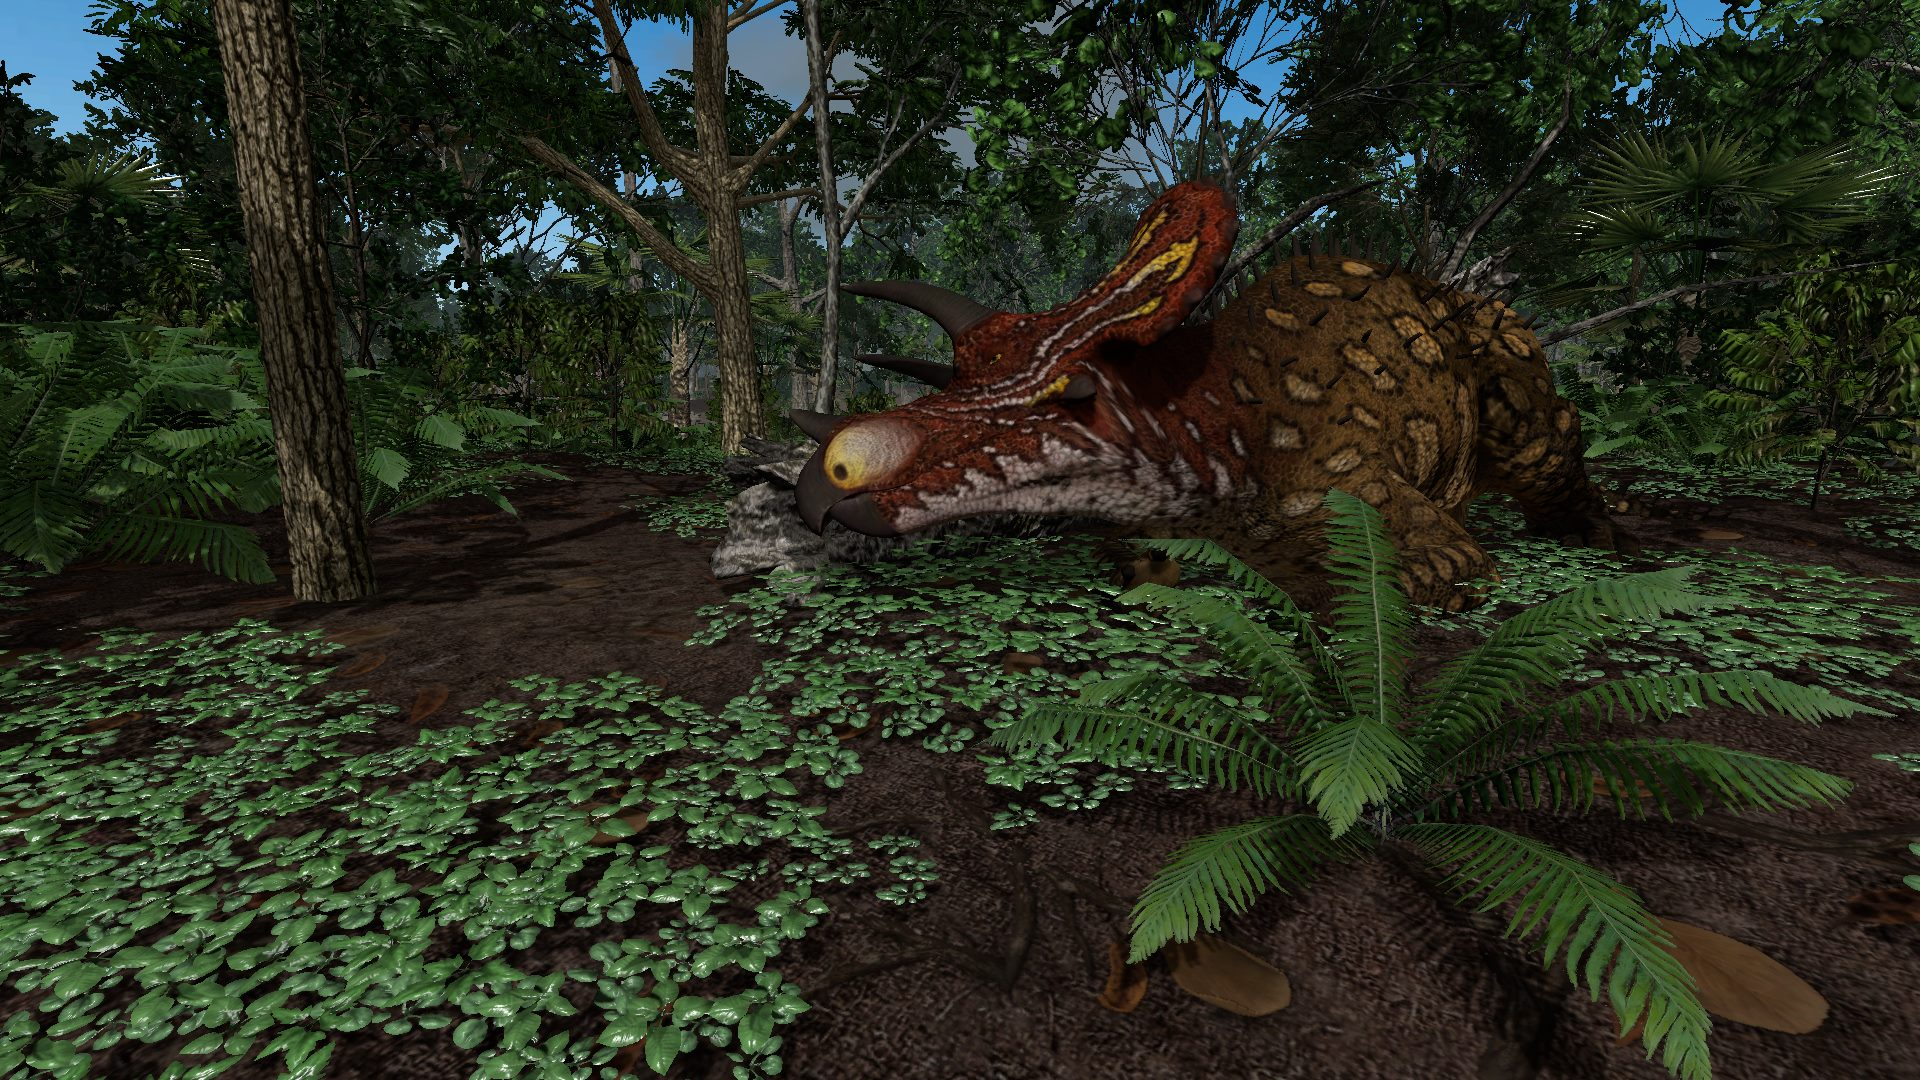 Triceratops im Wald in Saurian